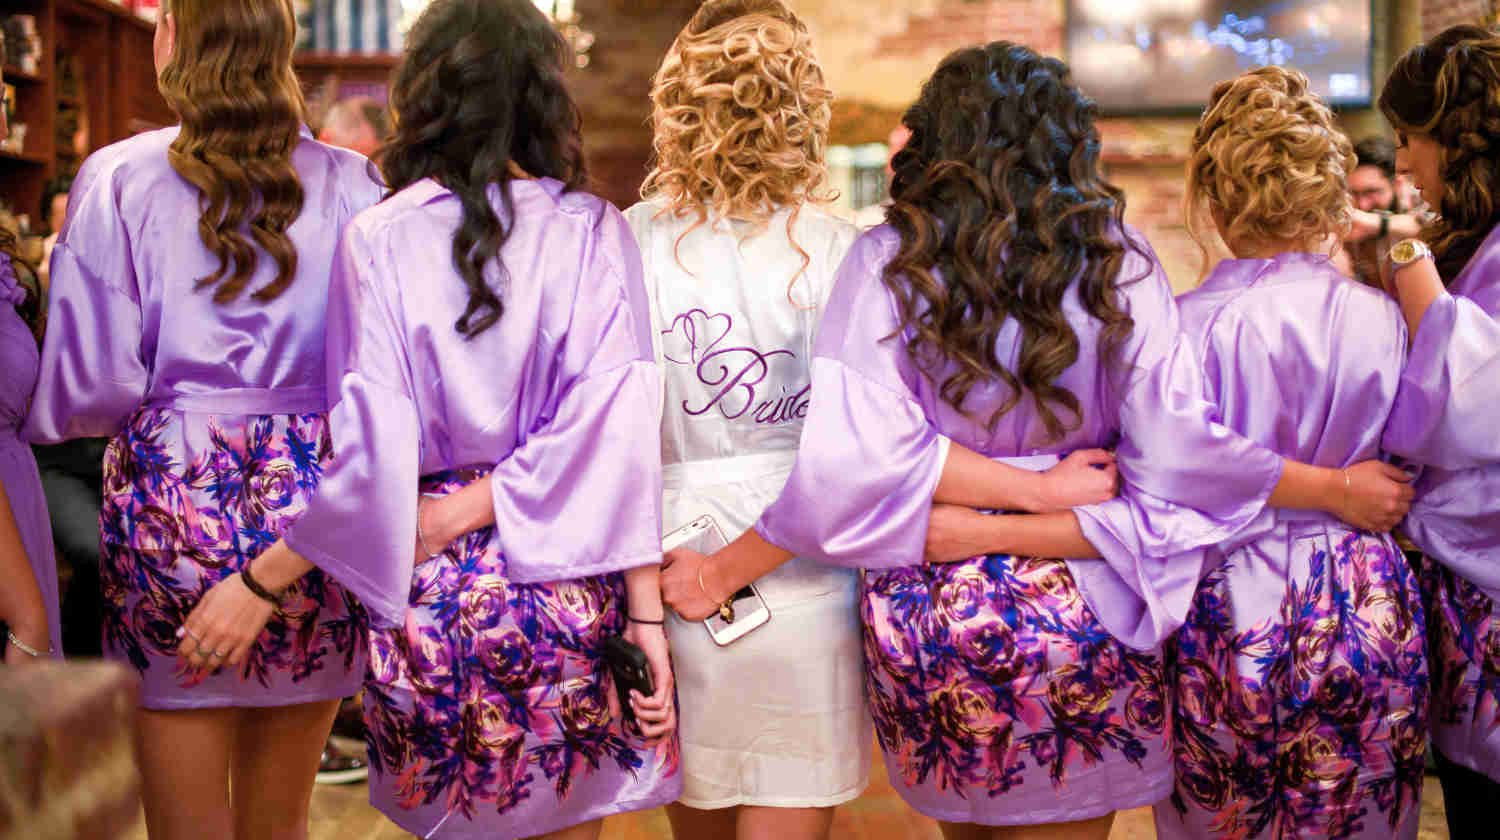 bride and her bridemaids wearing violet robes | Tips On Choosing The Best Bride And Bridesmaid Robes | bridesmaid robes | robes for bridesmaids | featured